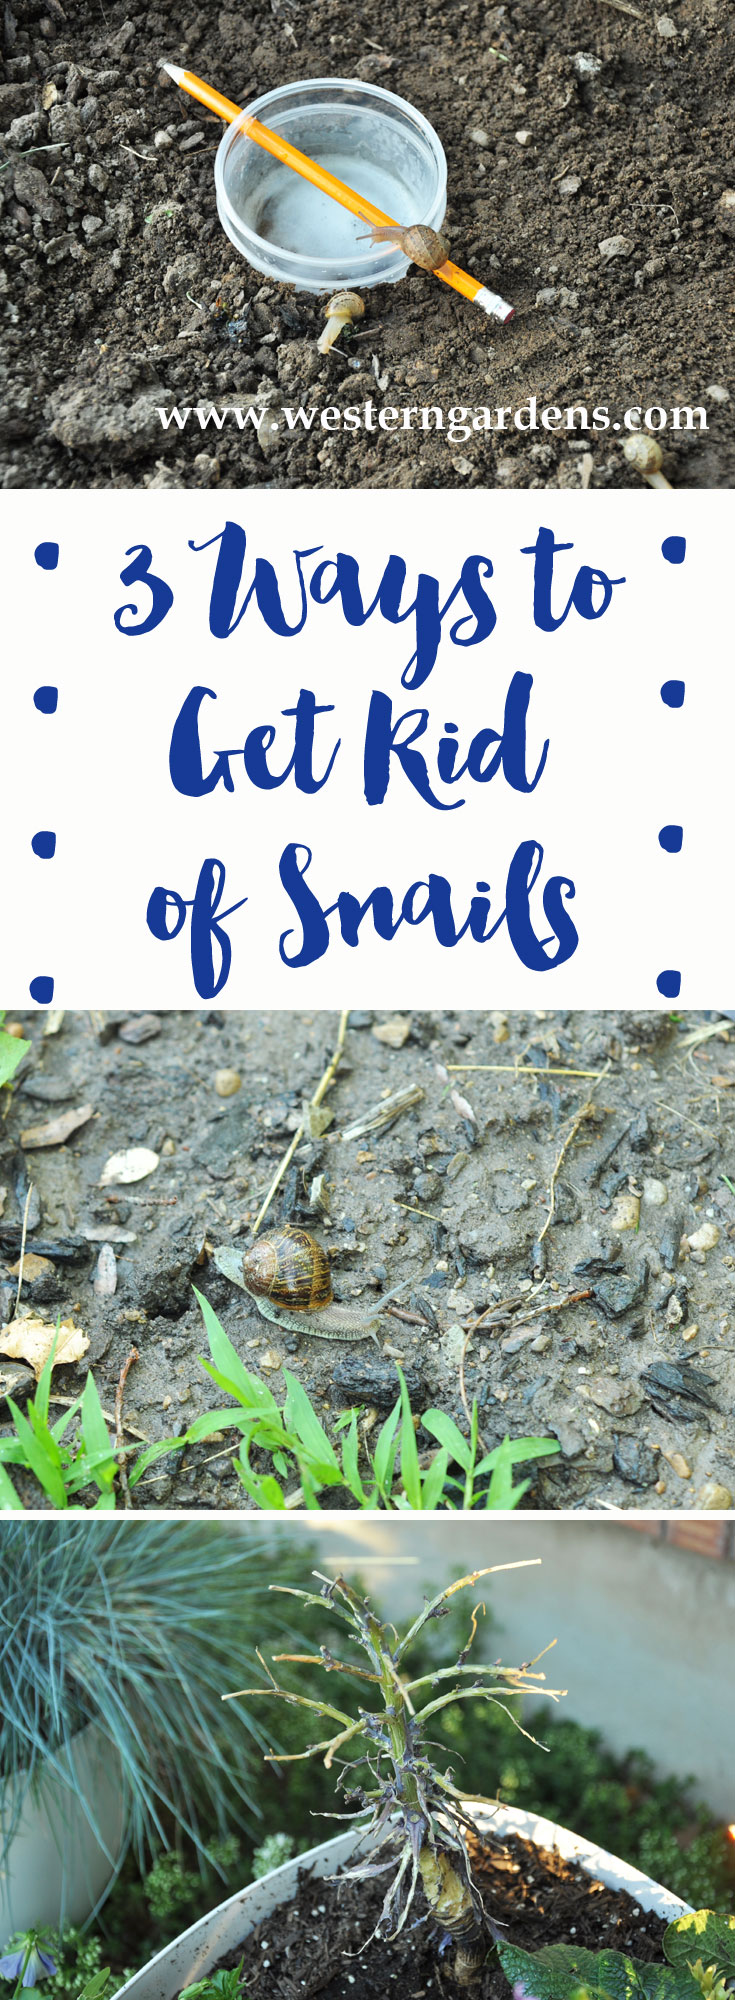 3 easy & cheap Ways to Get Rid of Snails, safe for pets and wildlife! www.westerngardens.com